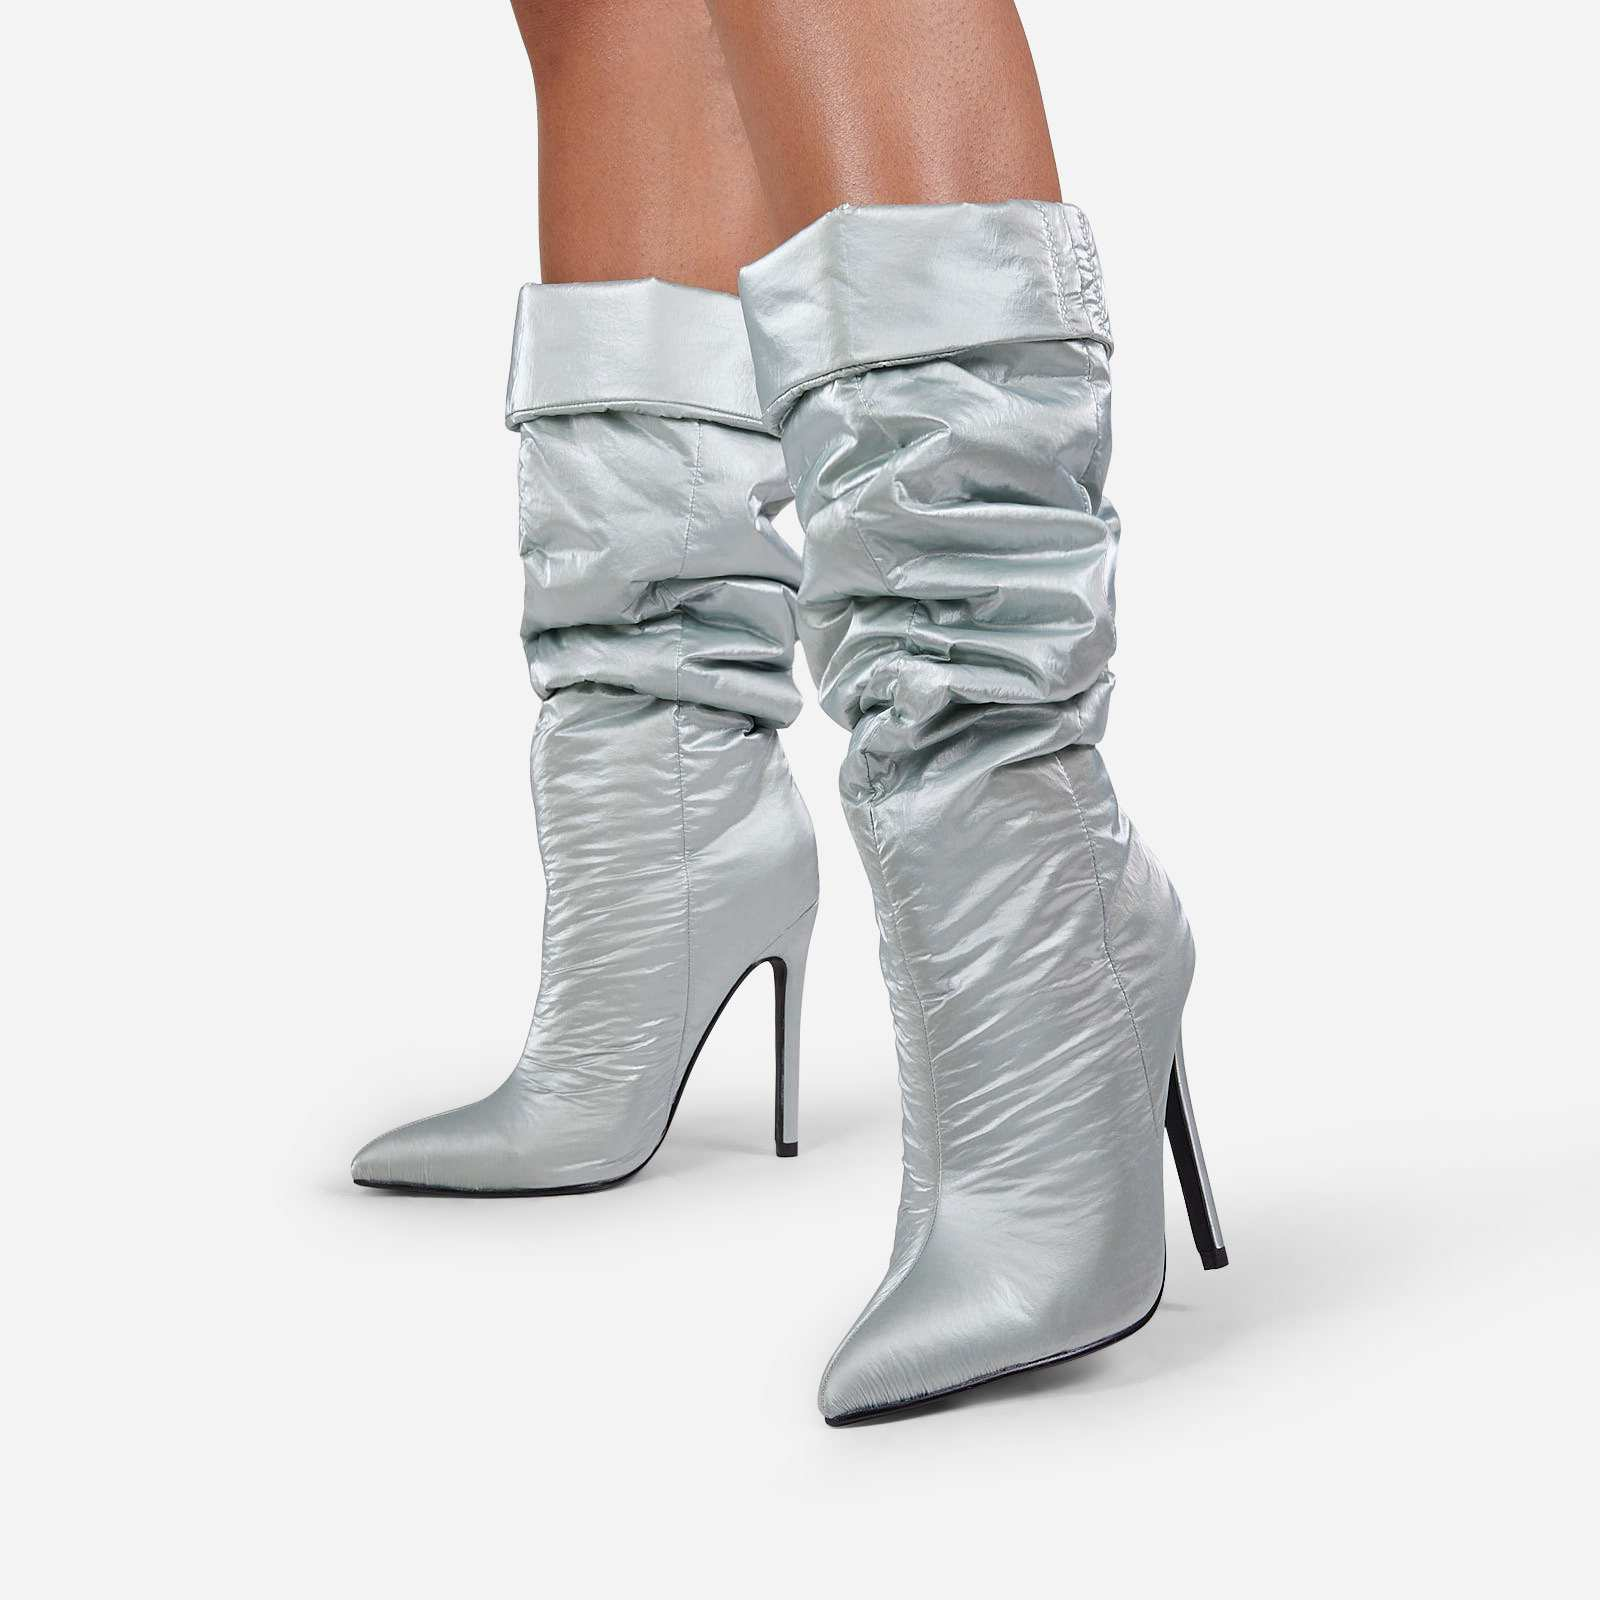 Ride-Or-Die Ruched Knee High Long Boot In Grey High Shine Nylon